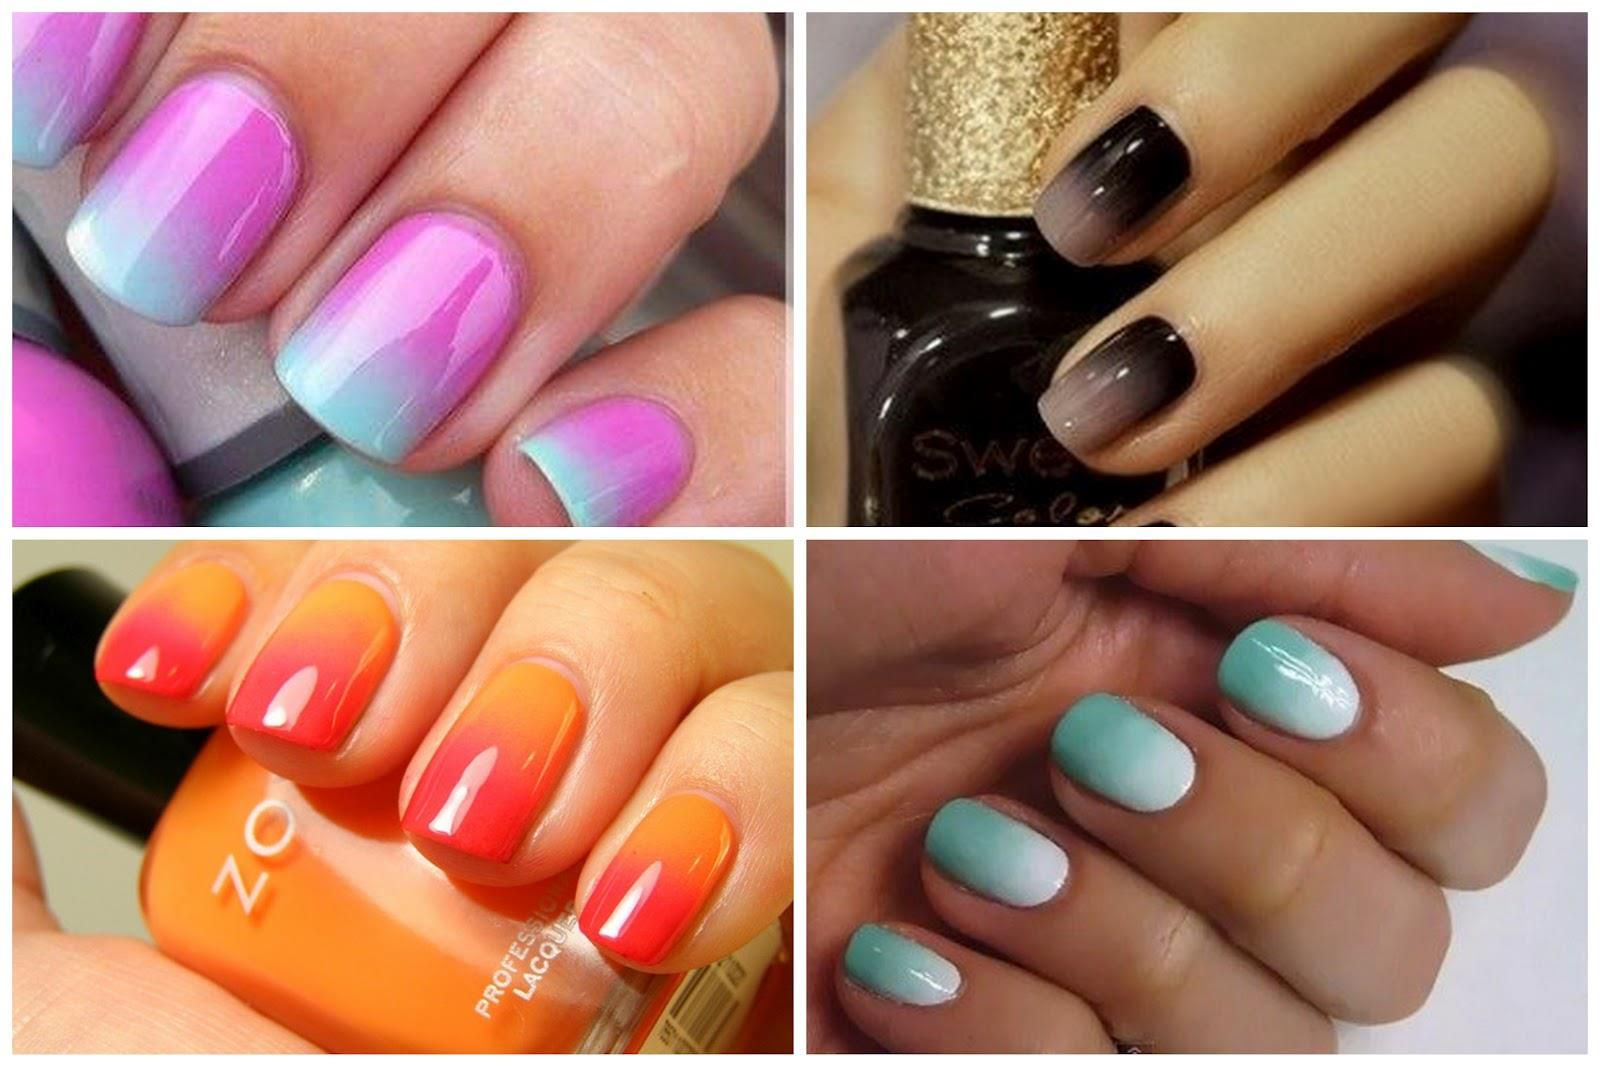 How To Guide: Ombre Nails at Home Ombré patterns have been ...